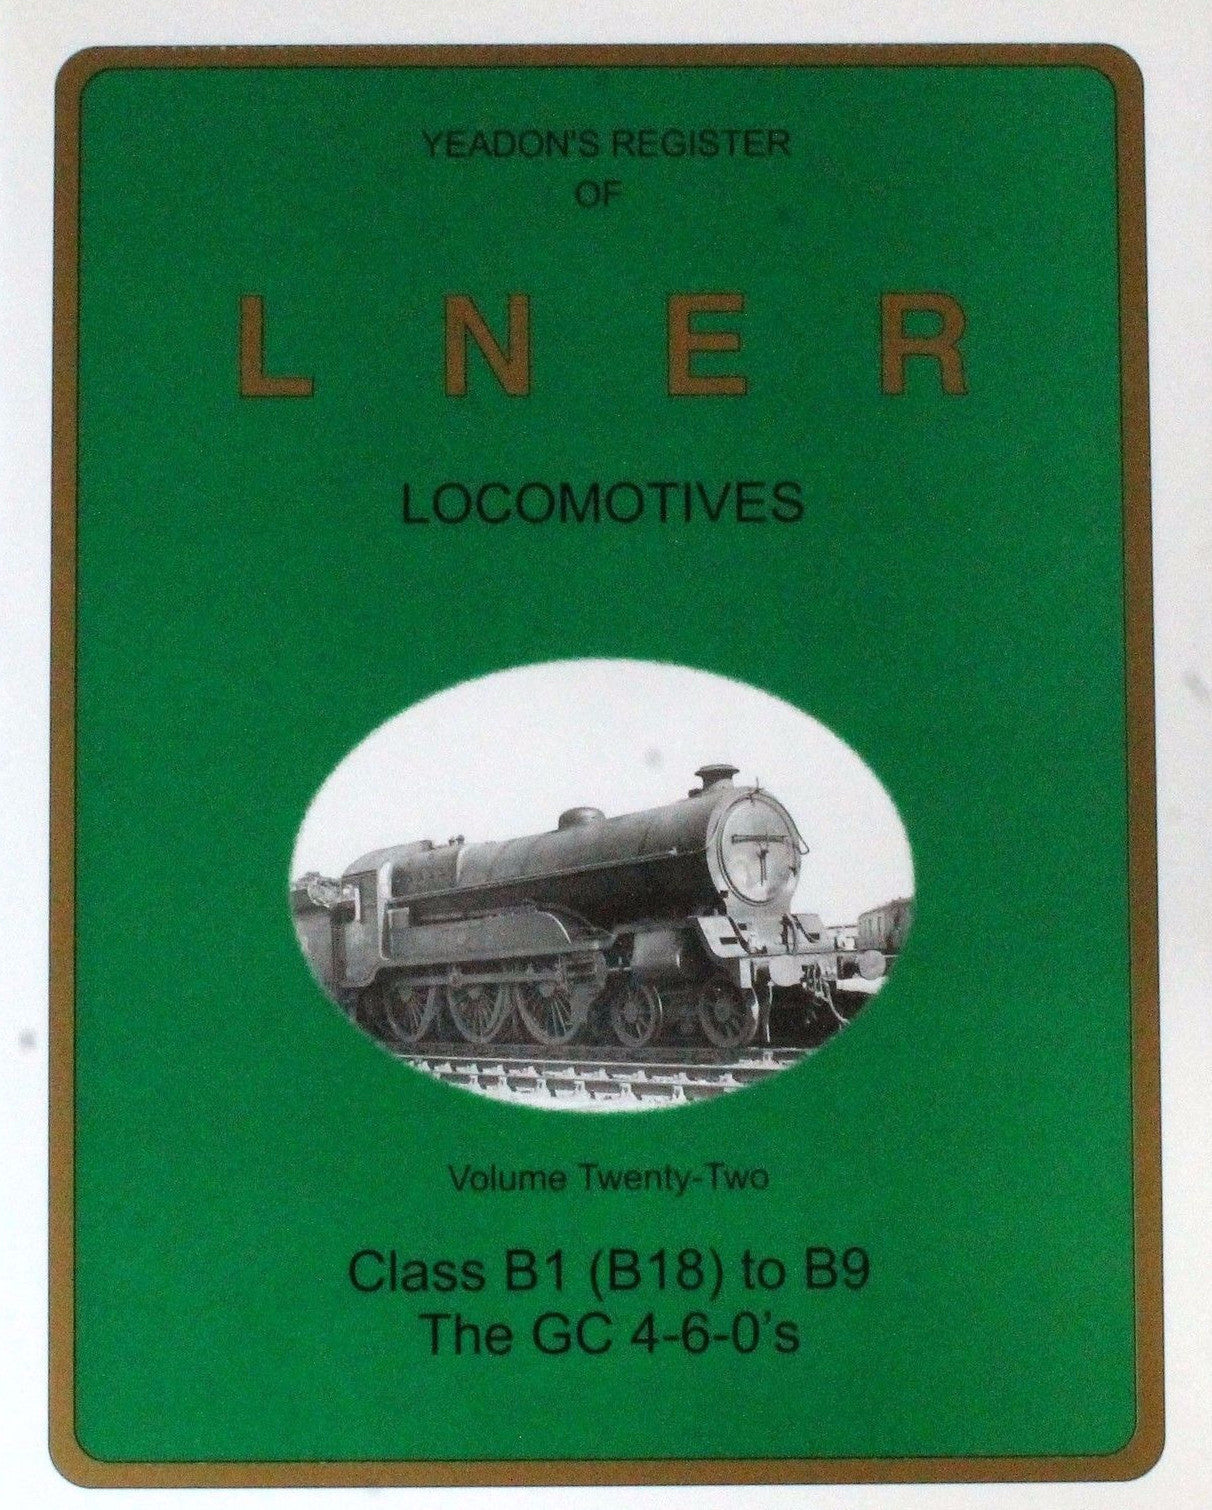 Yeadon's Register of LNER Locomotives, Volume 22 - Class B1(B18) to B9